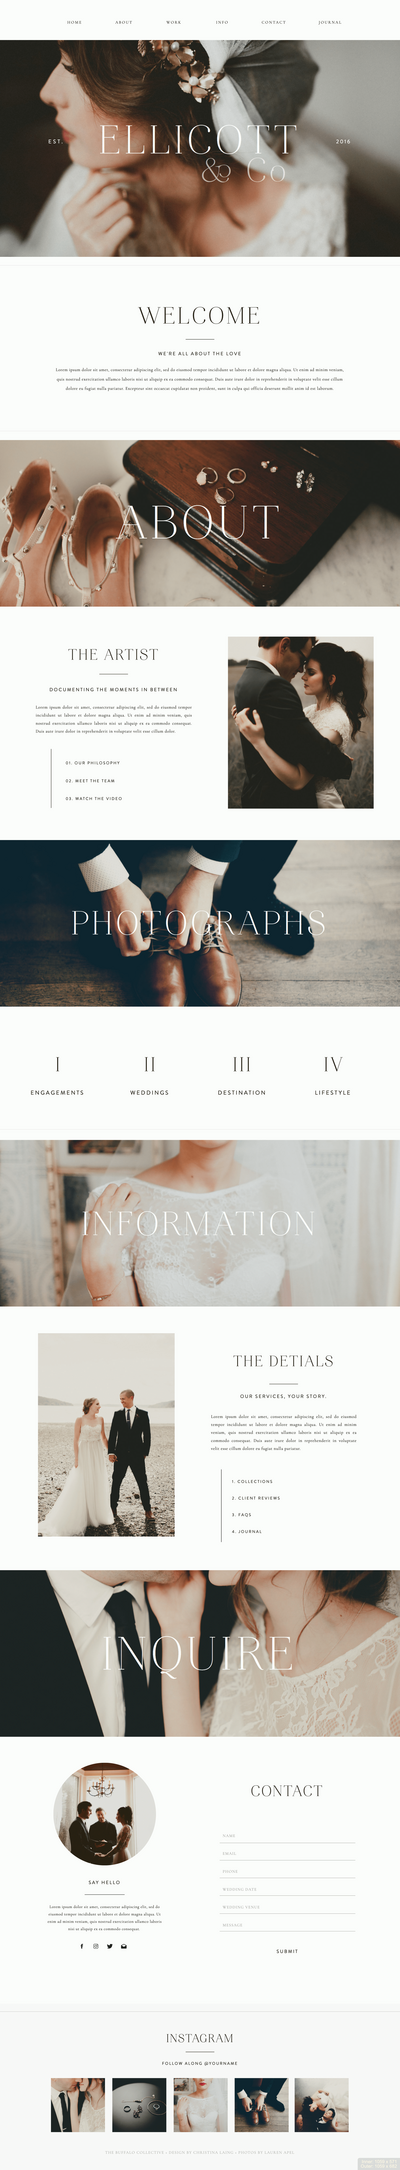 the-buffalo-collective-showit-website-template-ellicott